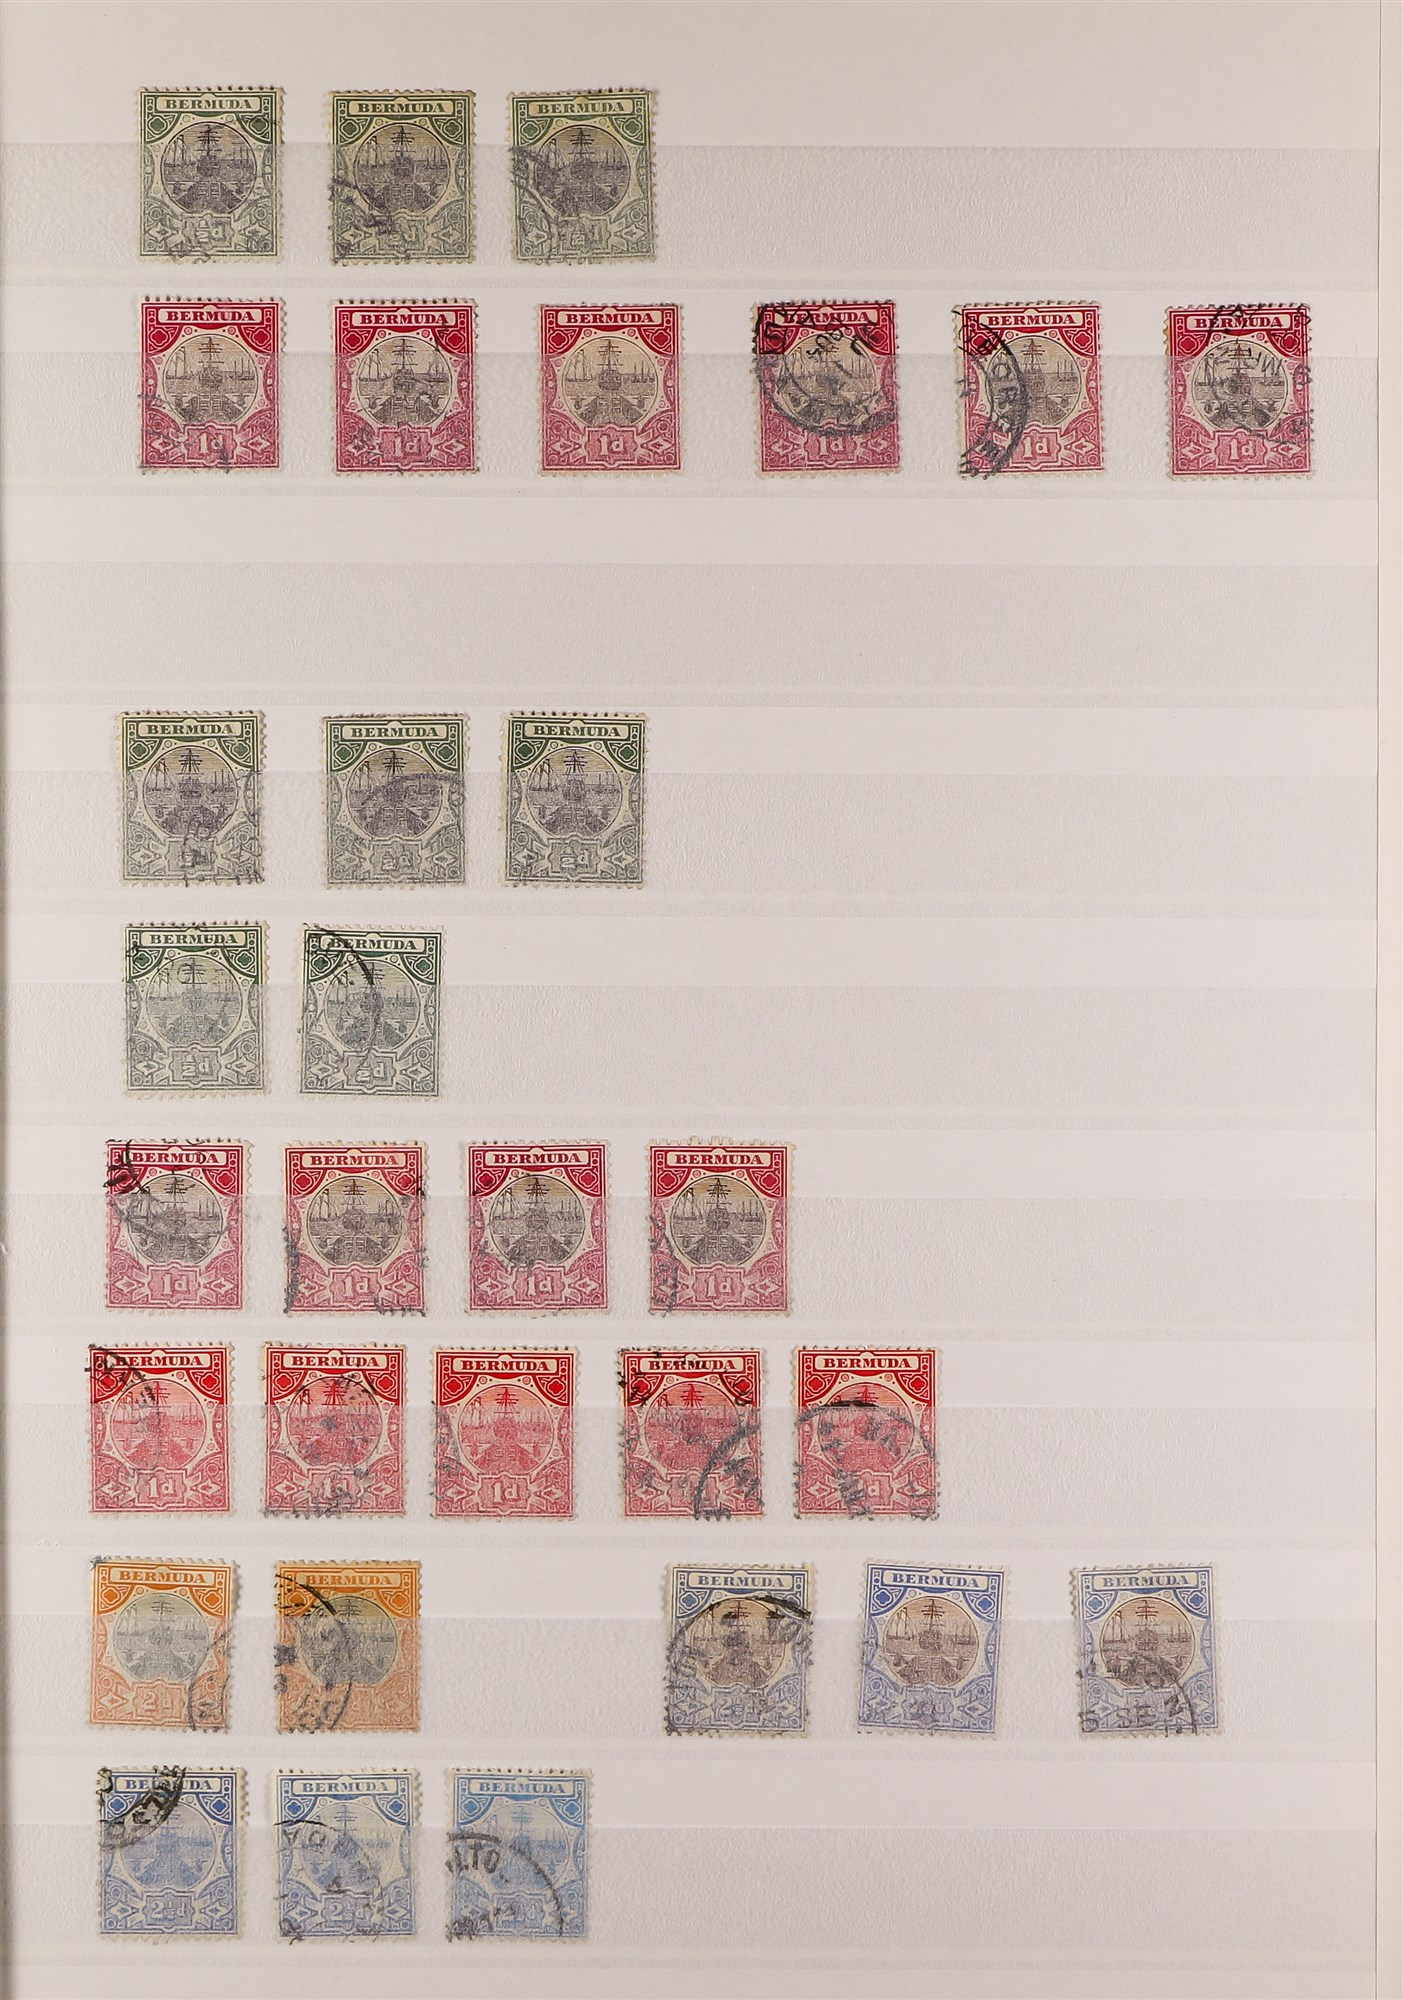 BERMUDA 1865-1952 used collection incl. 1865-1903 CC Wmk to 1s, 1883-1904 CA Wmk to 1s, 1901-10 - Image 3 of 9